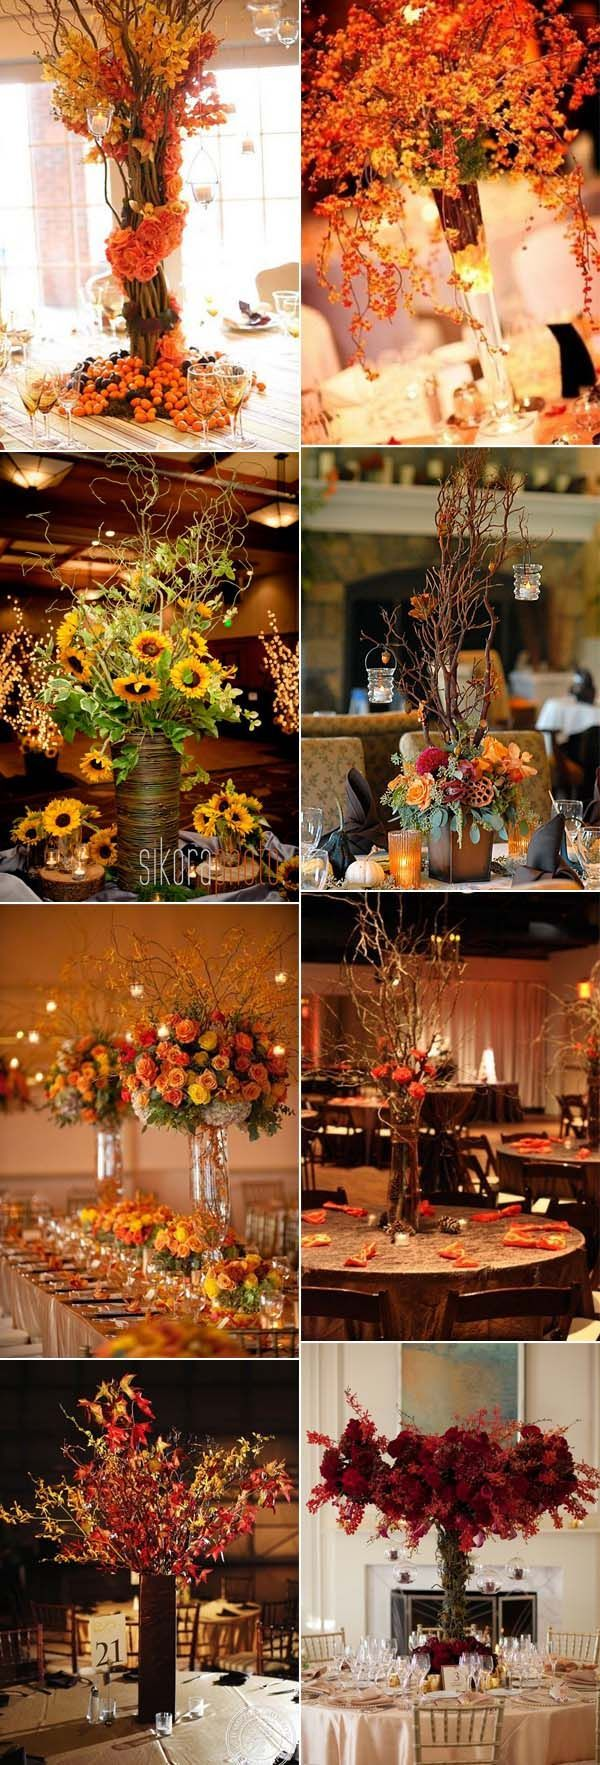 46 Inspirational Fall U0026 Autumn Wedding Centerpieces Ideas Part 65